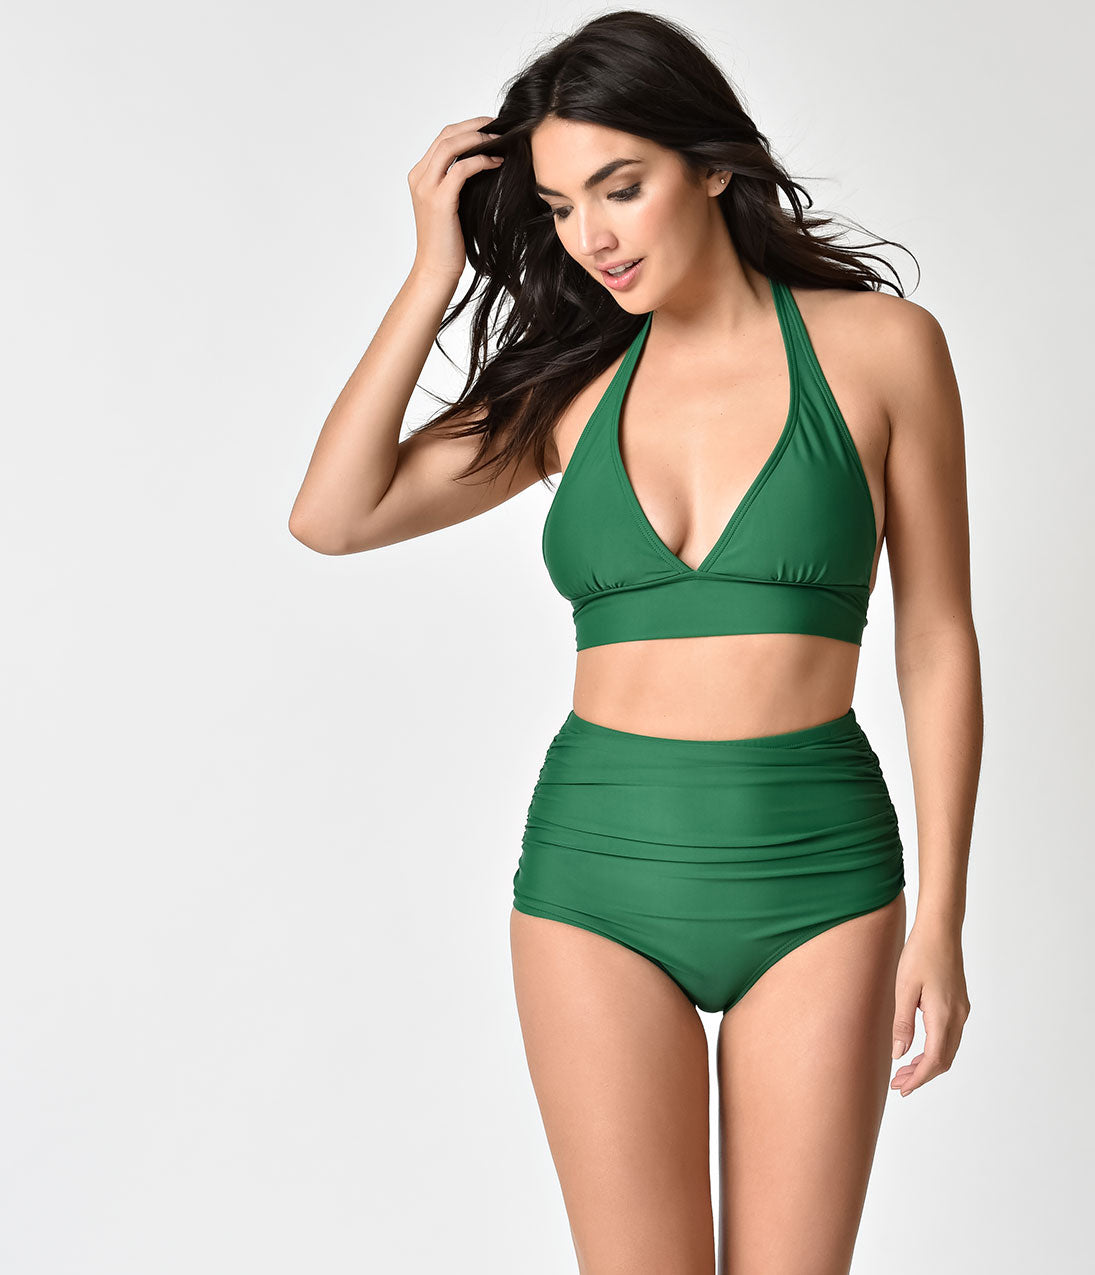 Vintage Bathing Suits | Retro Swimwear | Vintage Swimsuits Unique Vintage Emerald Green Georgiana High Waist Swim Bottoms $28.00 AT vintagedancer.com